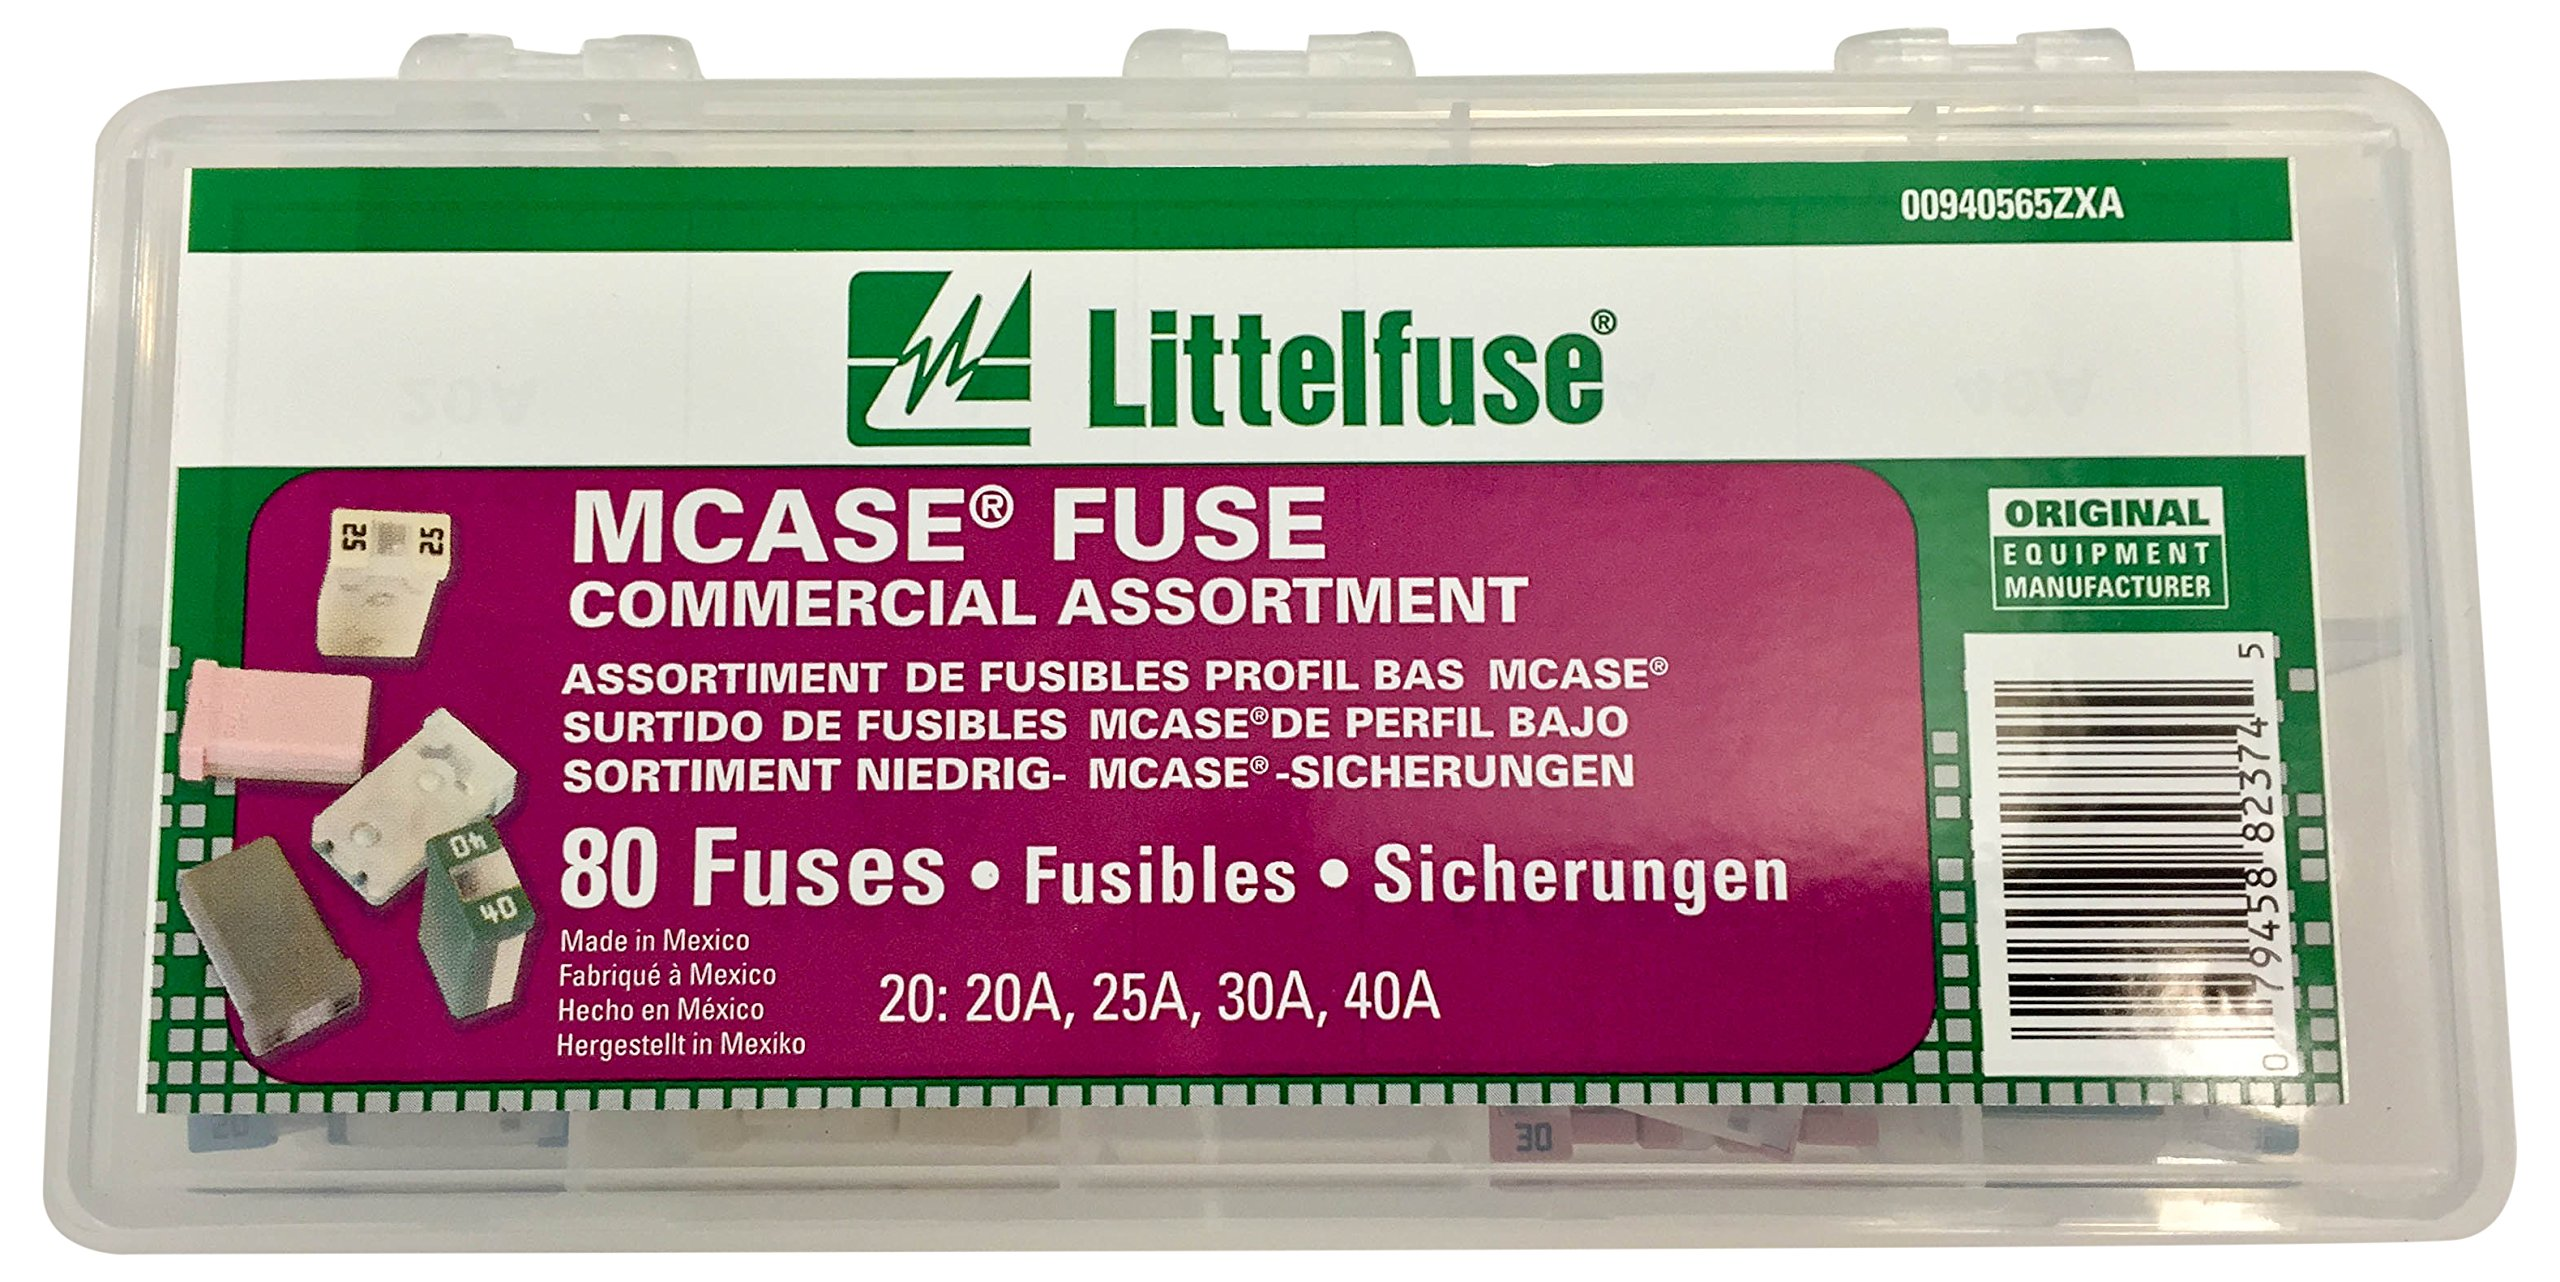 Littelfuse 00940565ZXA MCase Blade Fuse Commercial Assortment (Pack of 80)